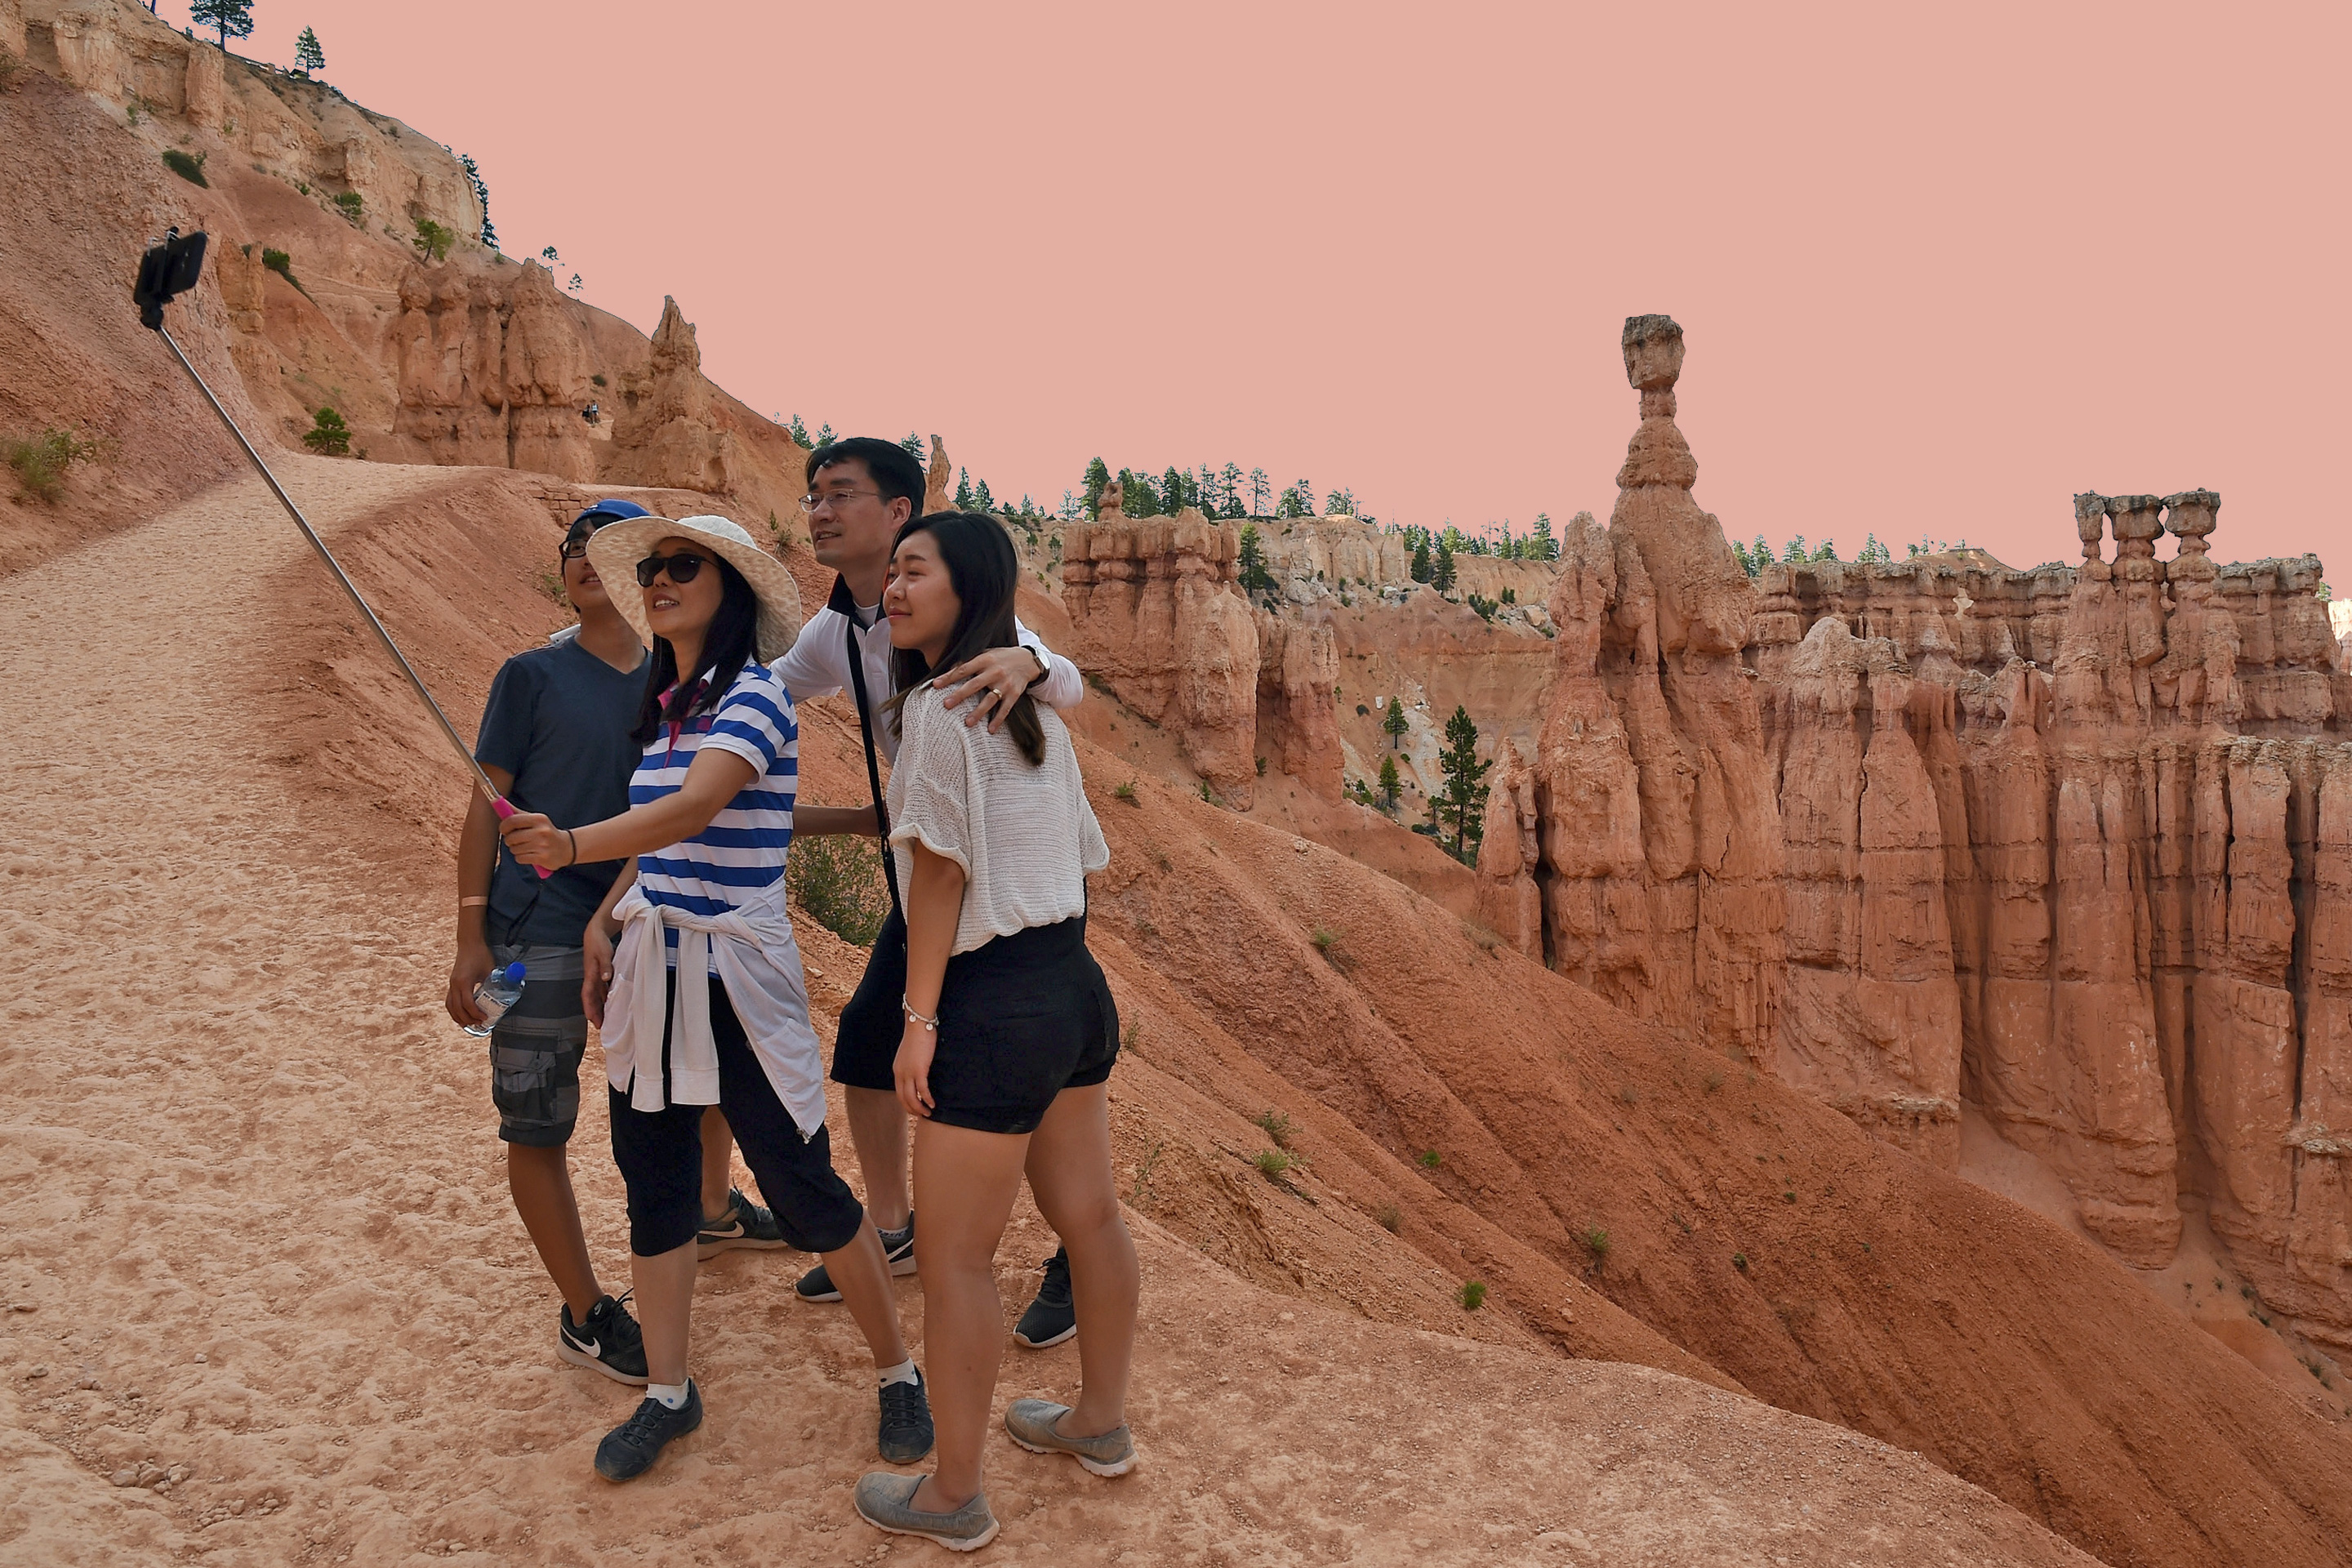 The National Park Service has issued a guide on safe selfies.